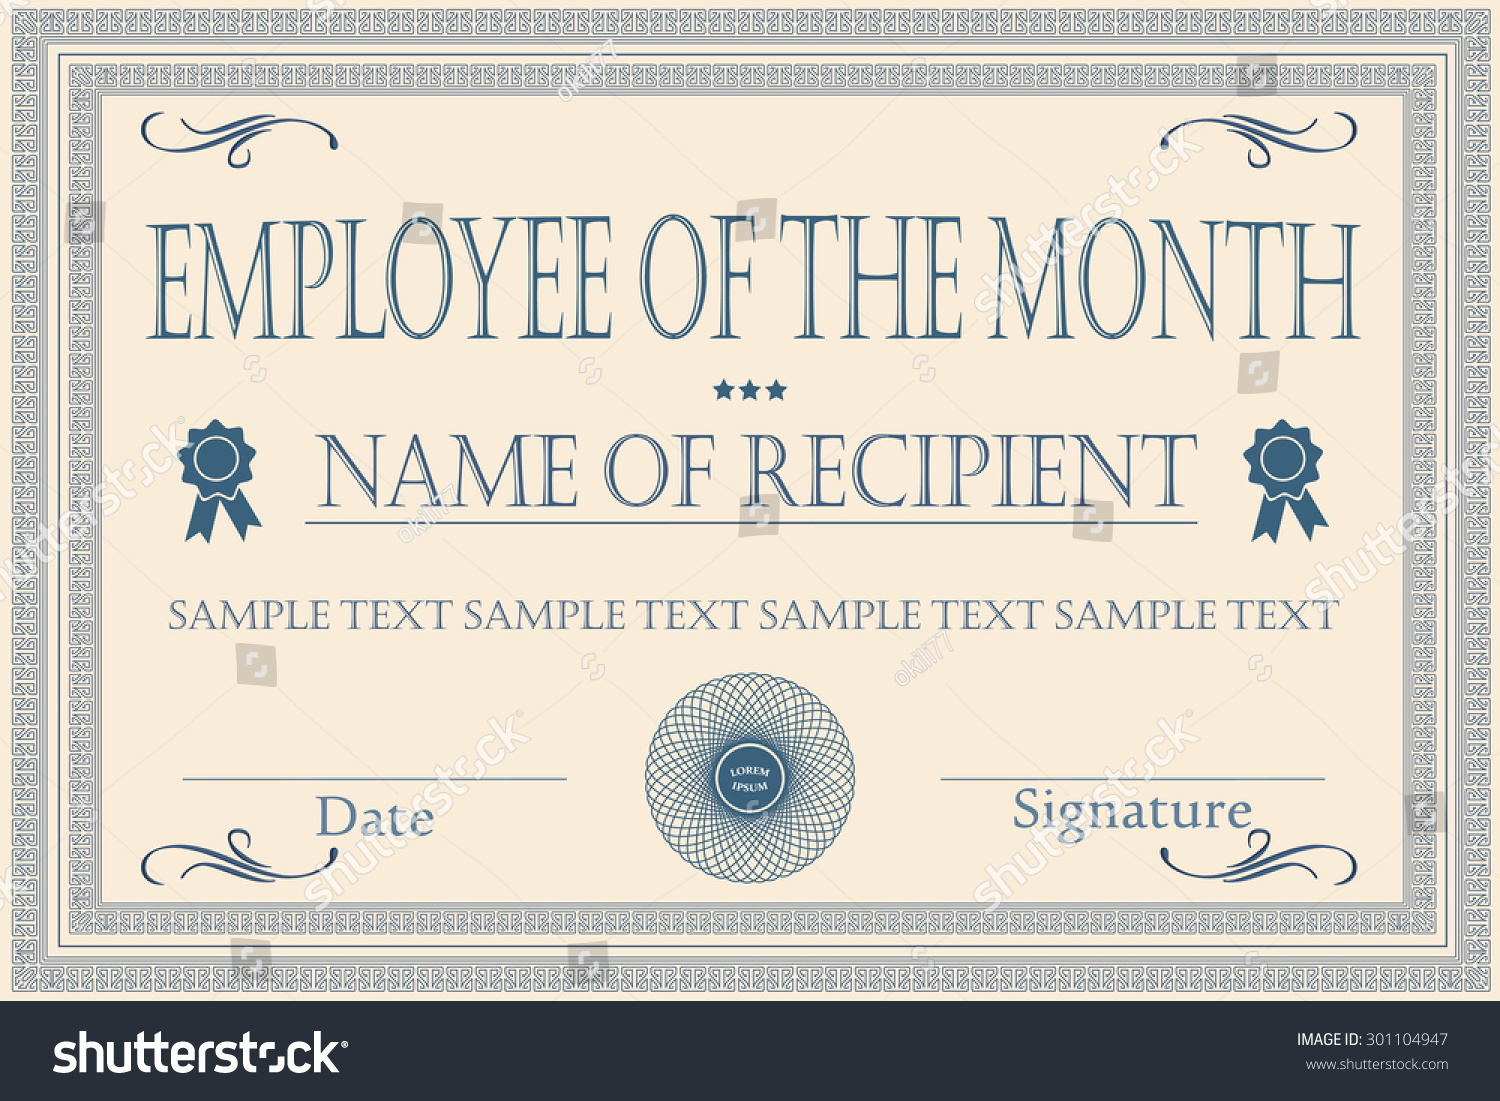 Appreciation Certificate Wording printable resume – Free Employee of the Month Certificate Template